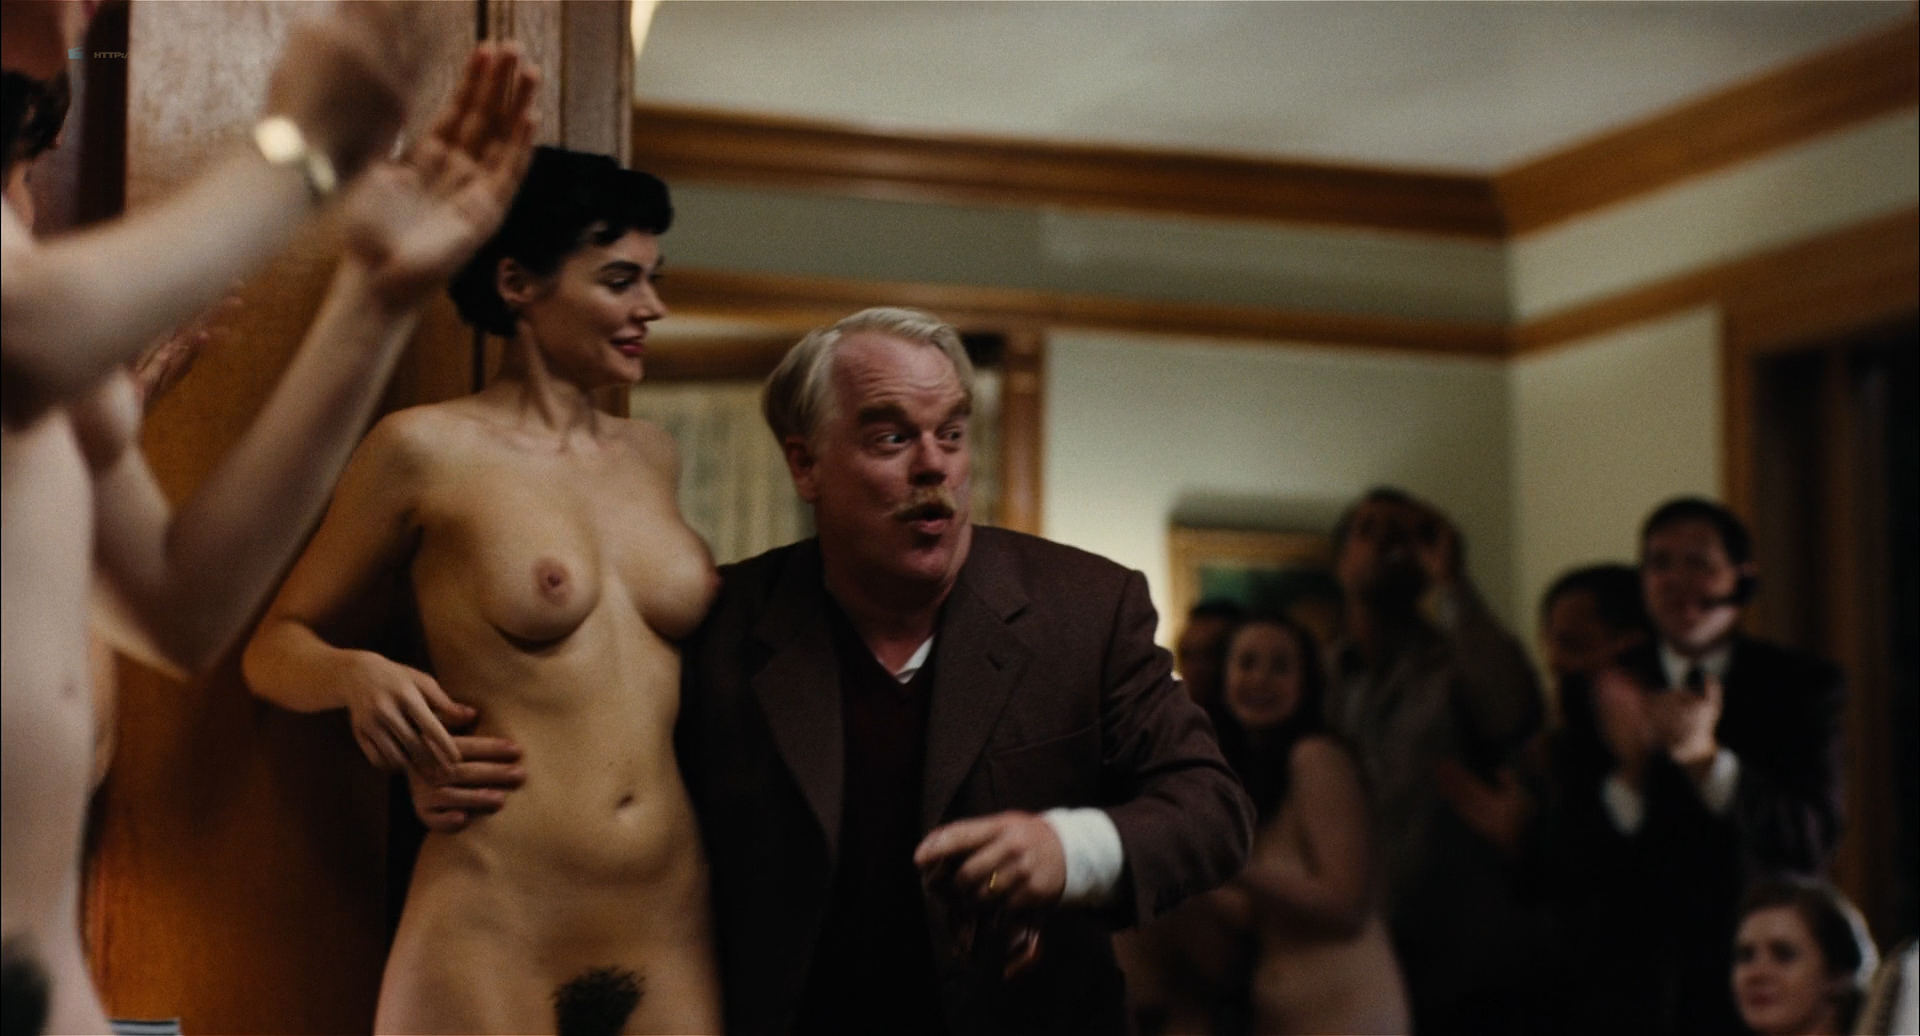 Amy Ferguson nude topless, Liz Clare, Katie Boland nude dancing Amy Adams nude covered and Jennifer Neala Page nude sex - The Master (2012) HD 1080p BluRay (18)